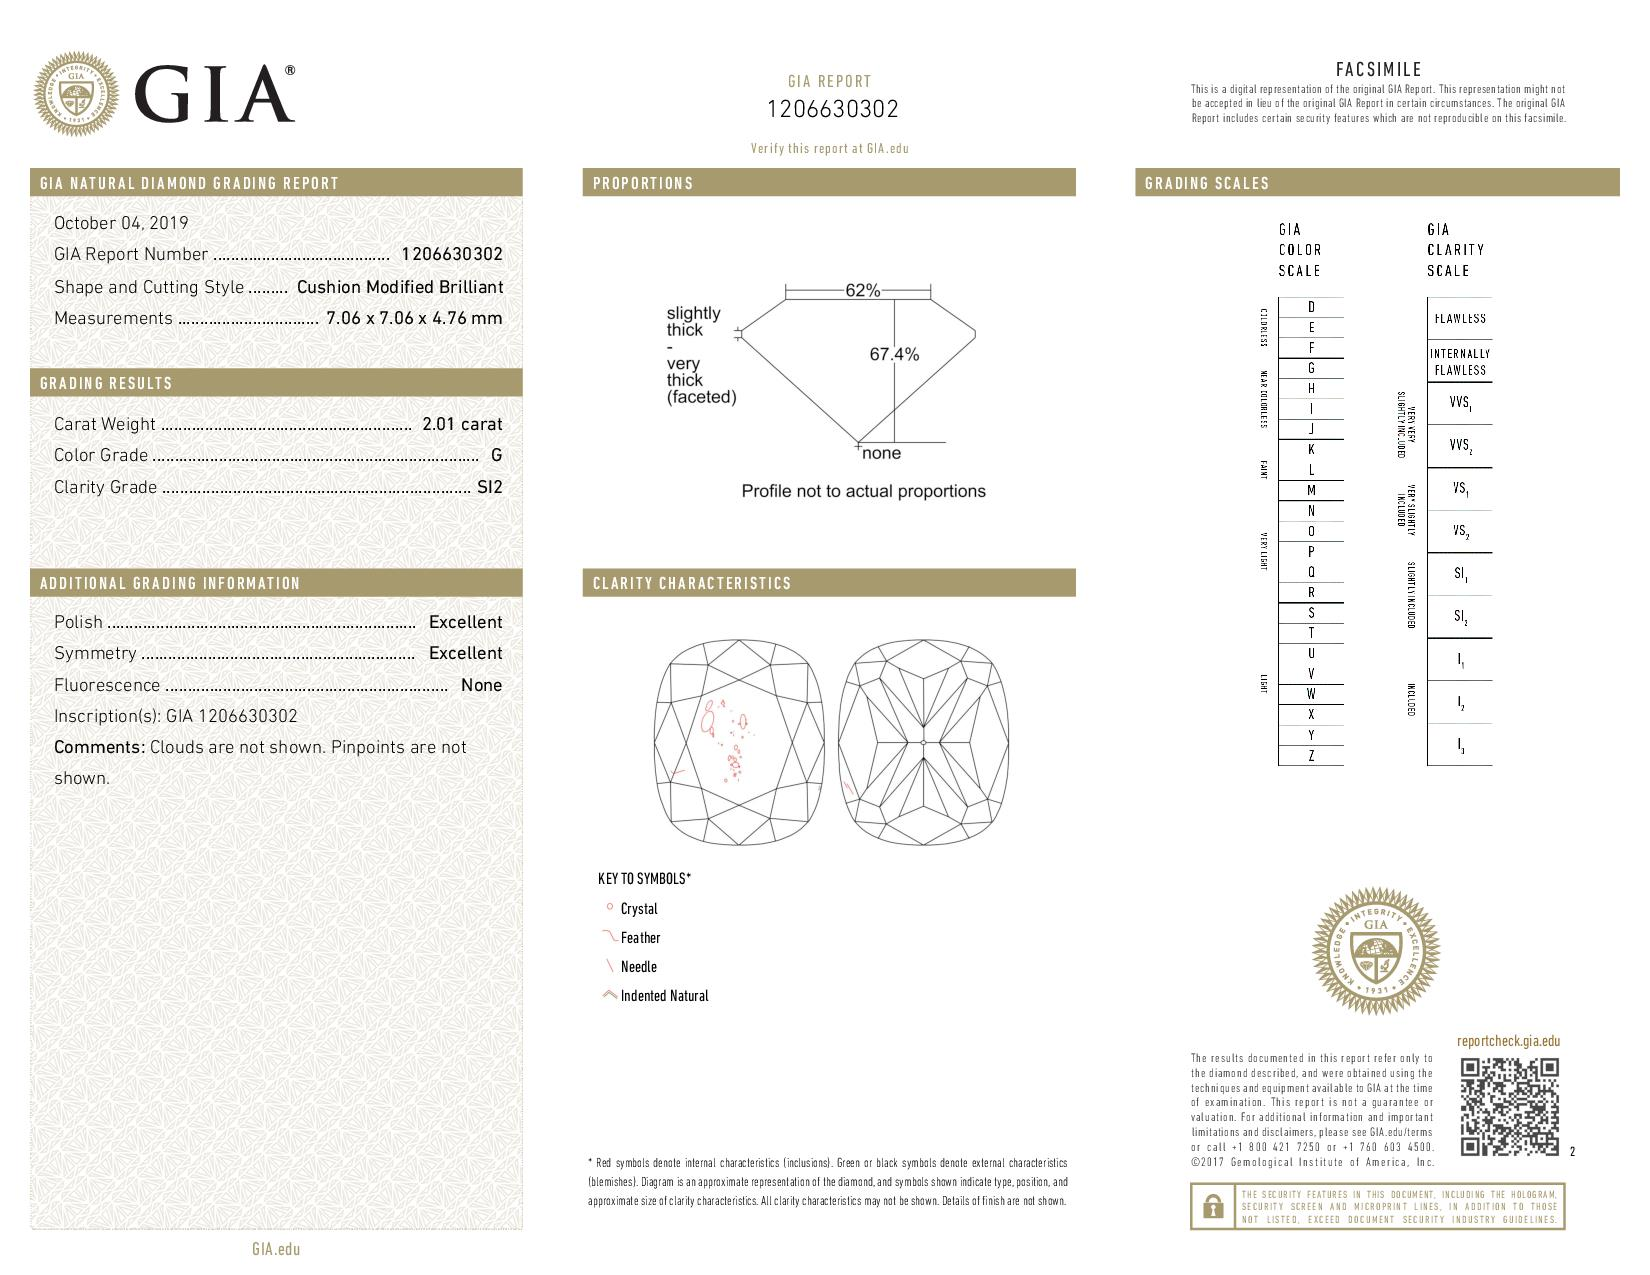 This is a 2.01 carat cushion shape, G color, SI2 clarity natural diamond accompanied by a GIA grading report.